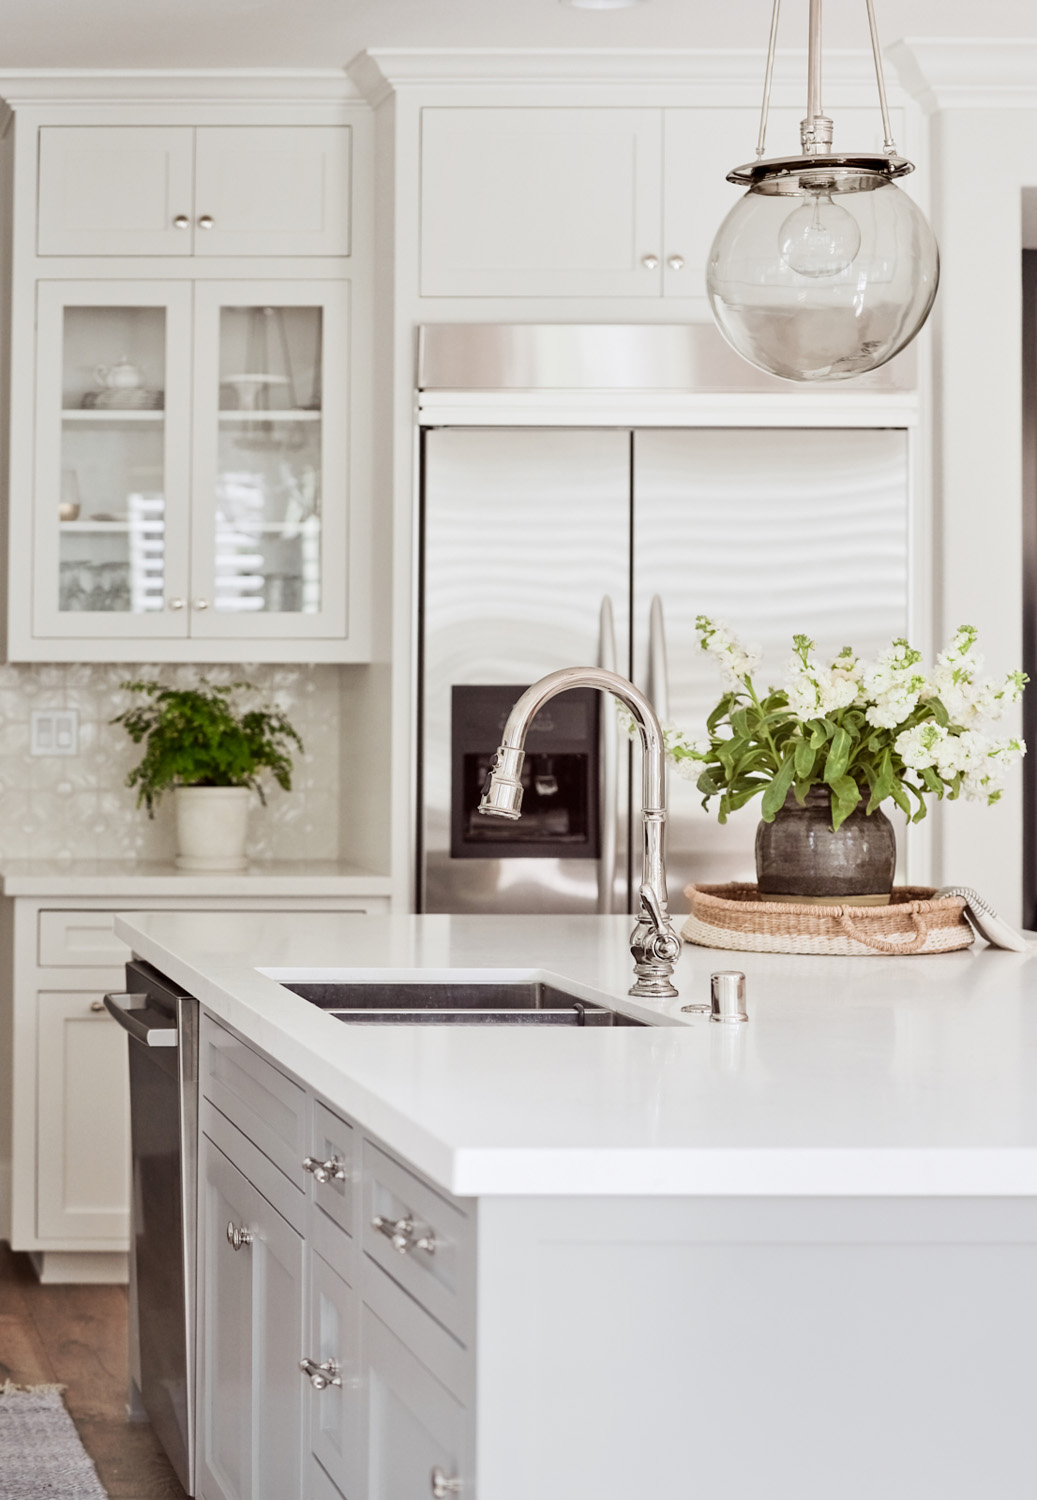 House By The Sea Glass Cabinetry.jpg